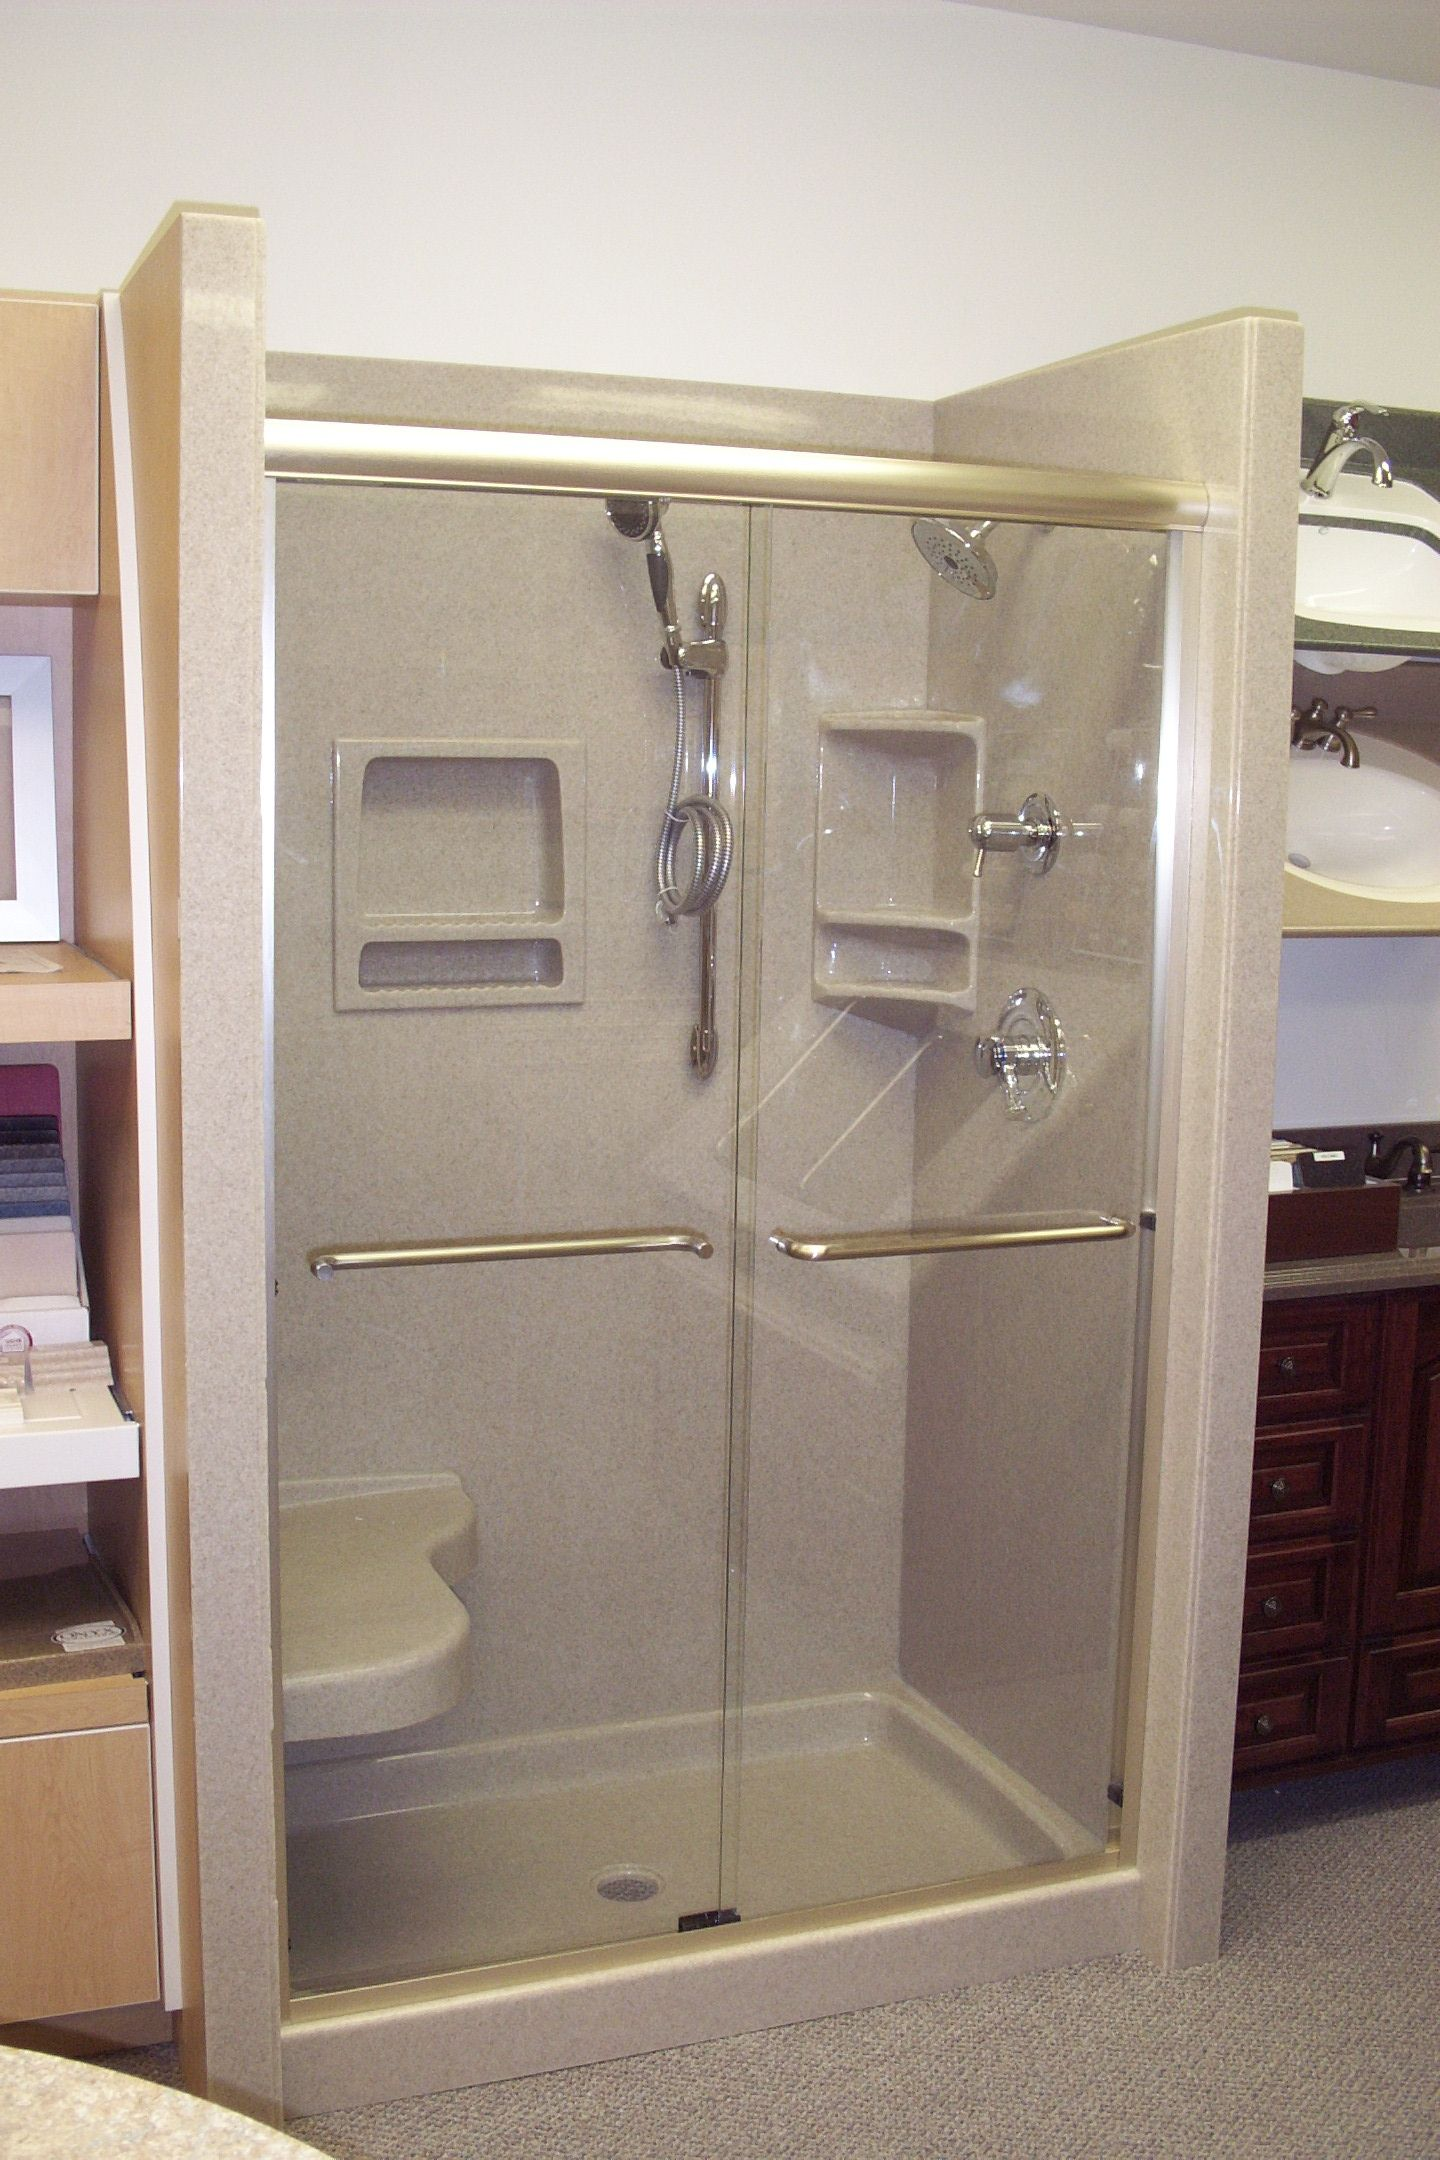 onyx home depot lowe s carry install it but kitchen bath onyx shower with sliding glass doors add as as many of the dozen shower accessories onyx offers